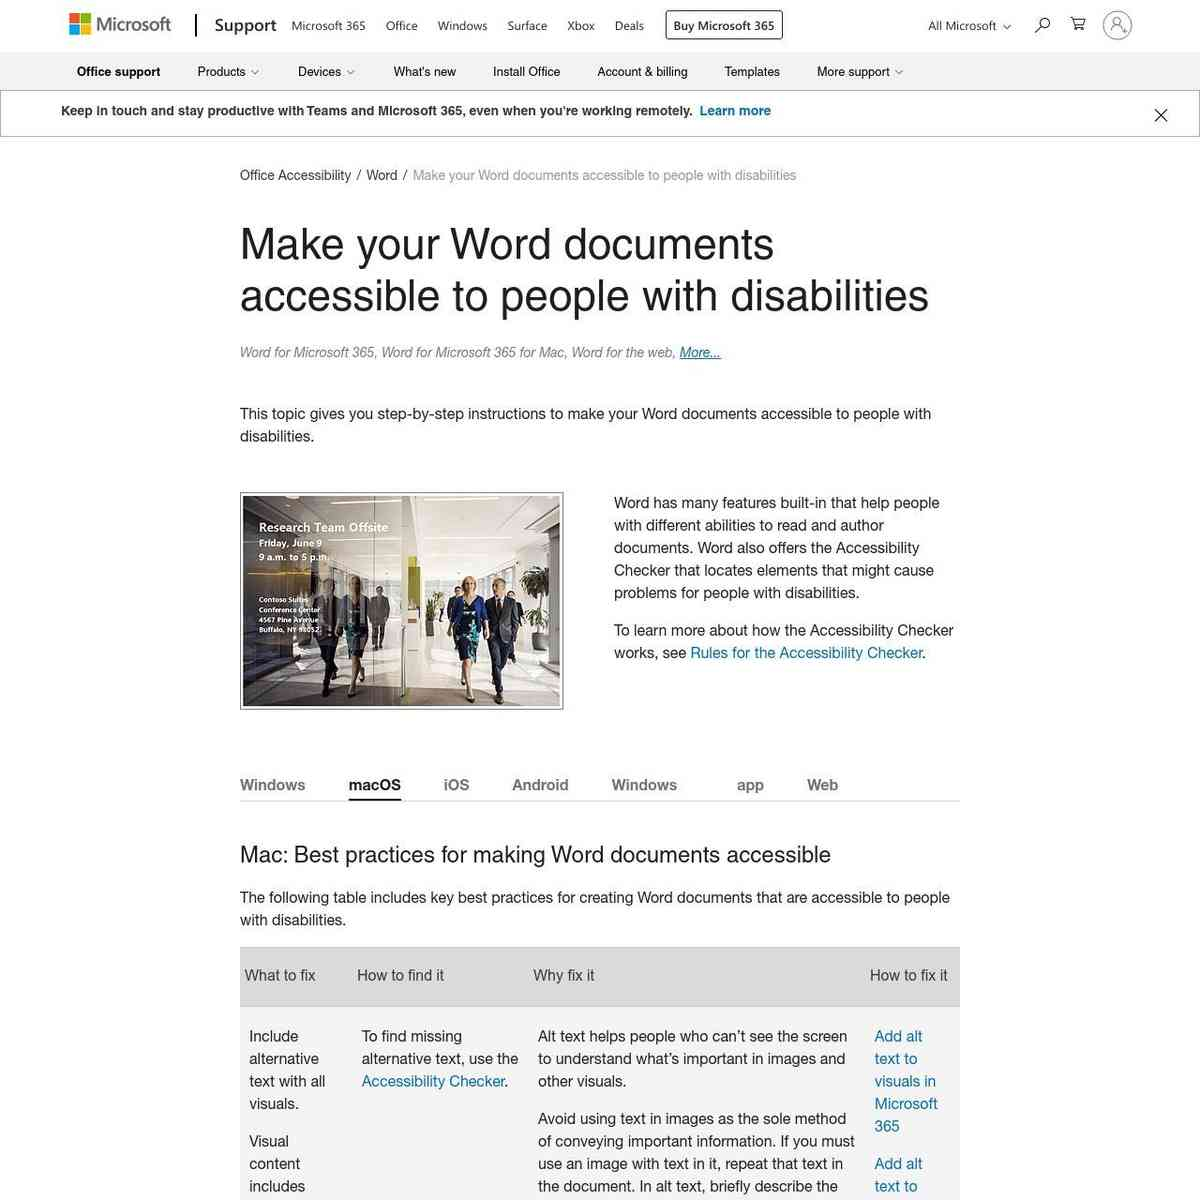 Make your Word documents accessible